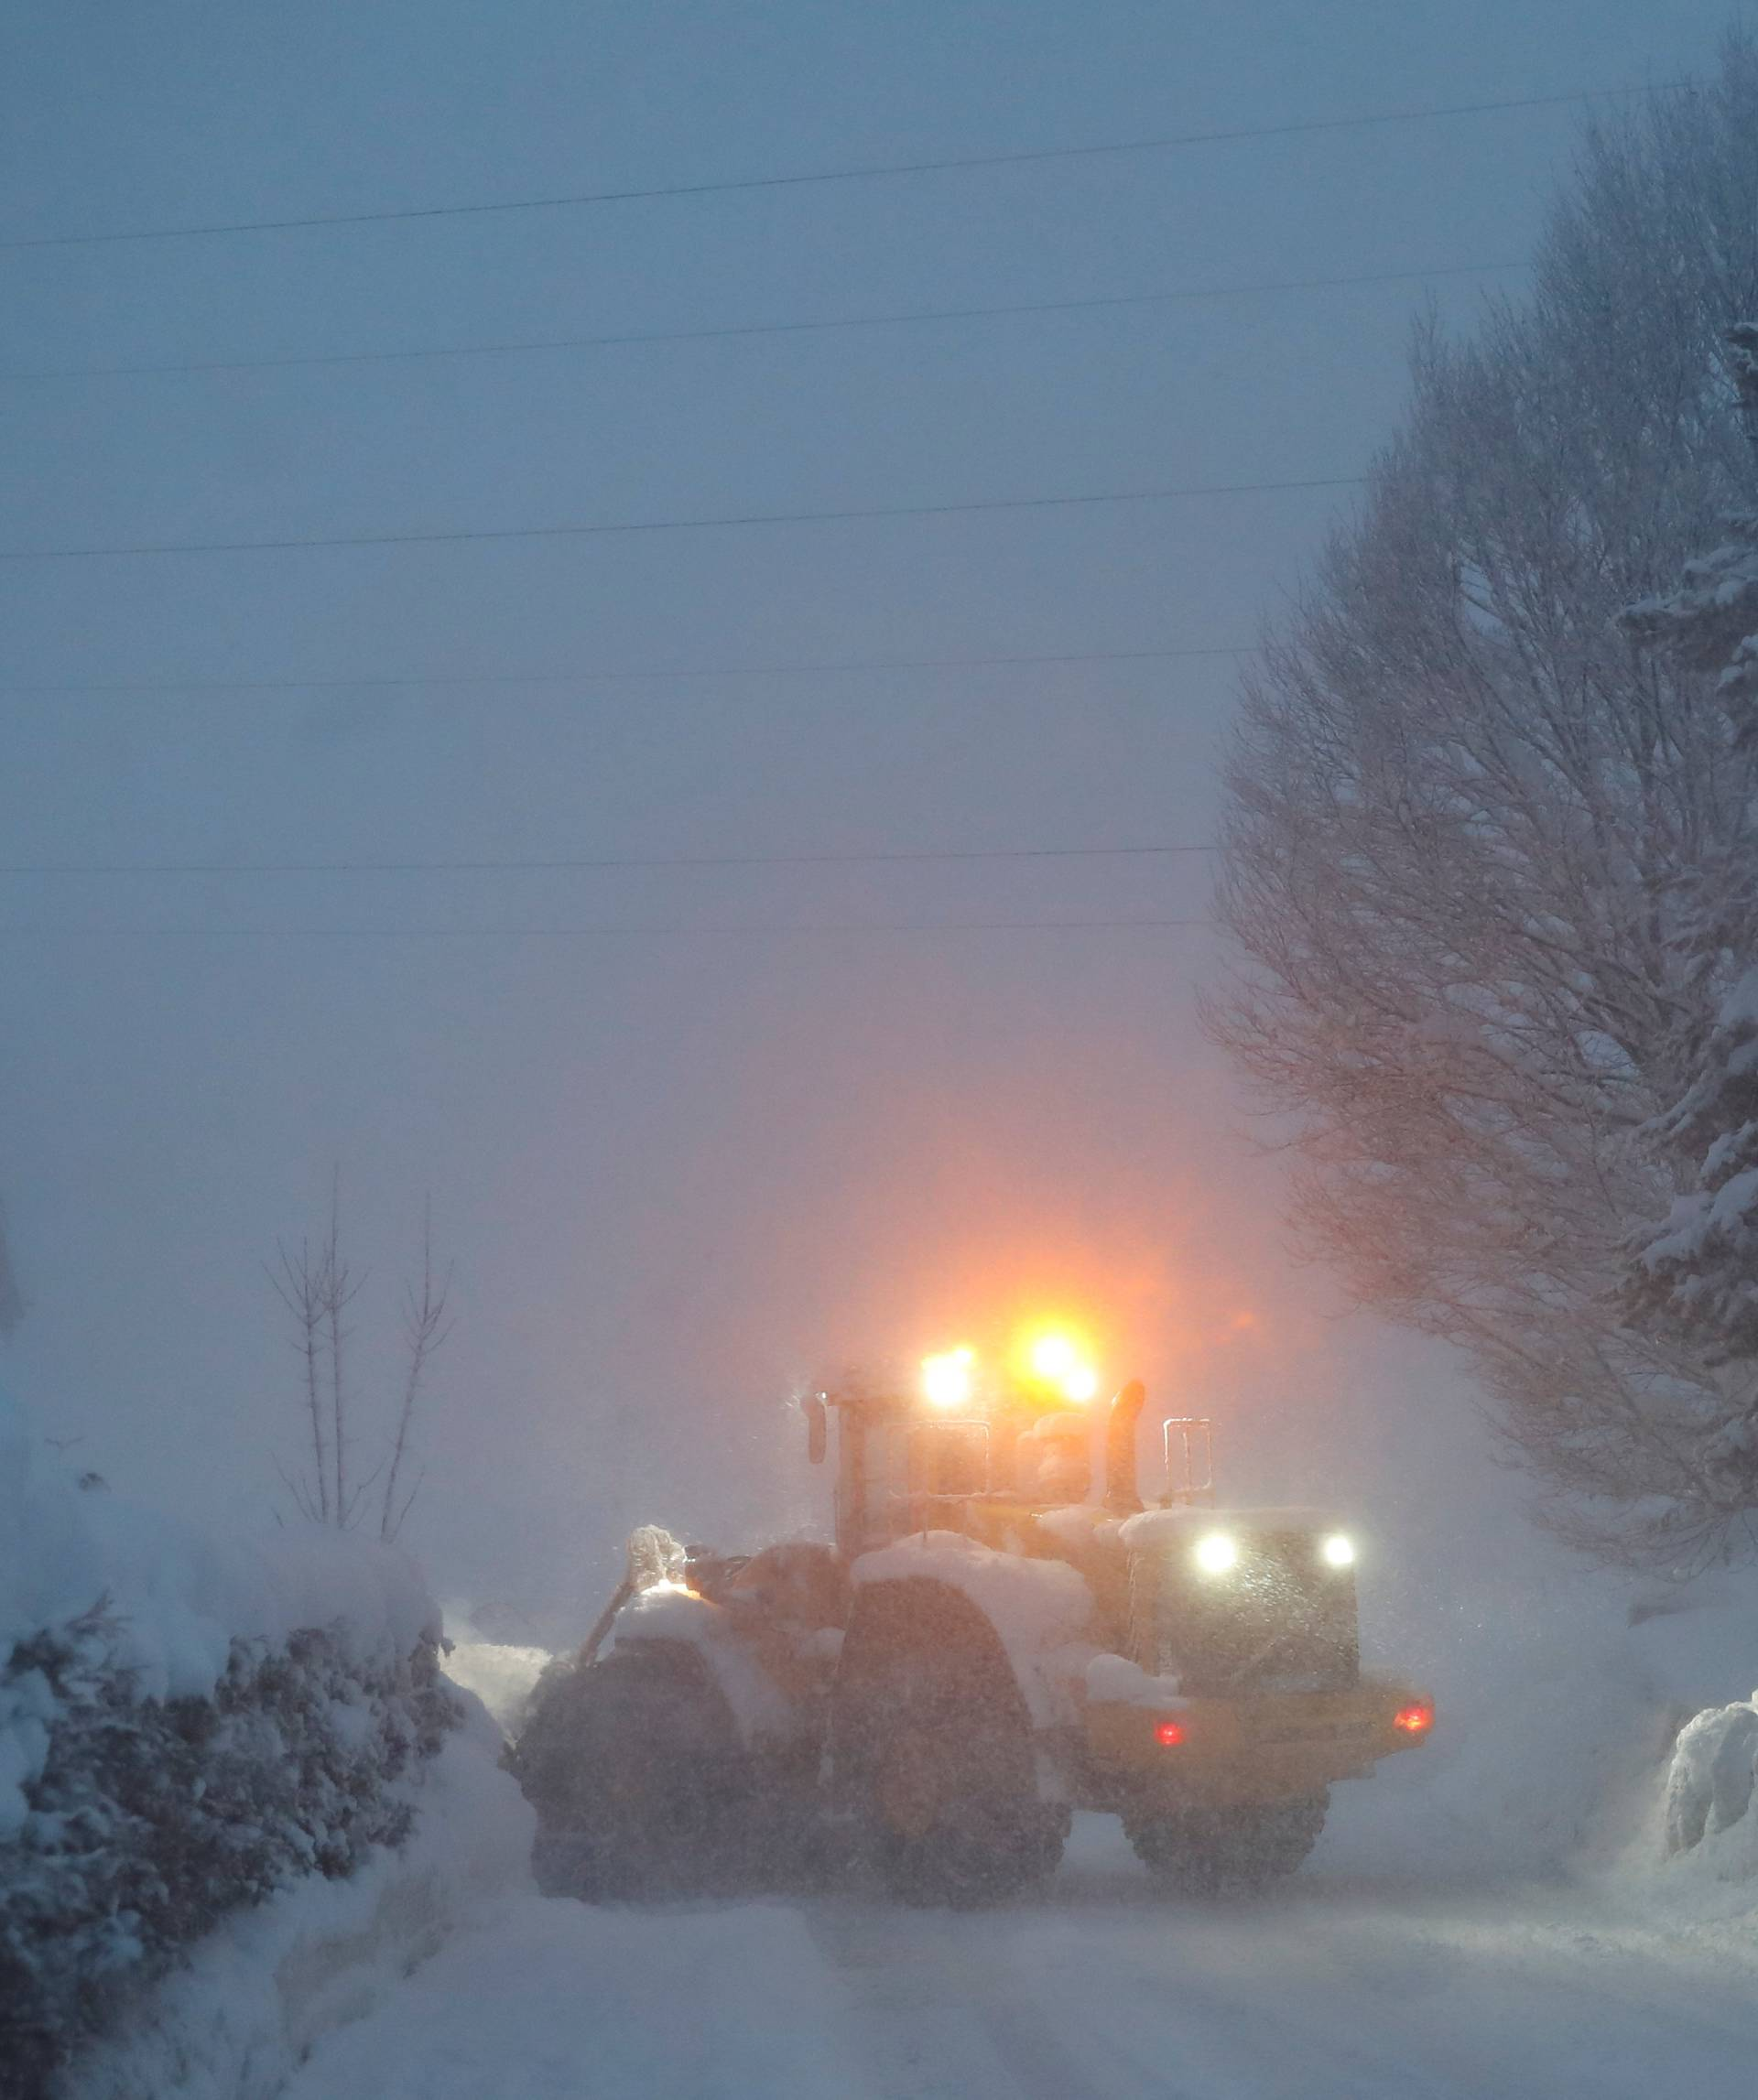 A vehicle removes snow from a road during heavy snowfall in Reitdorf